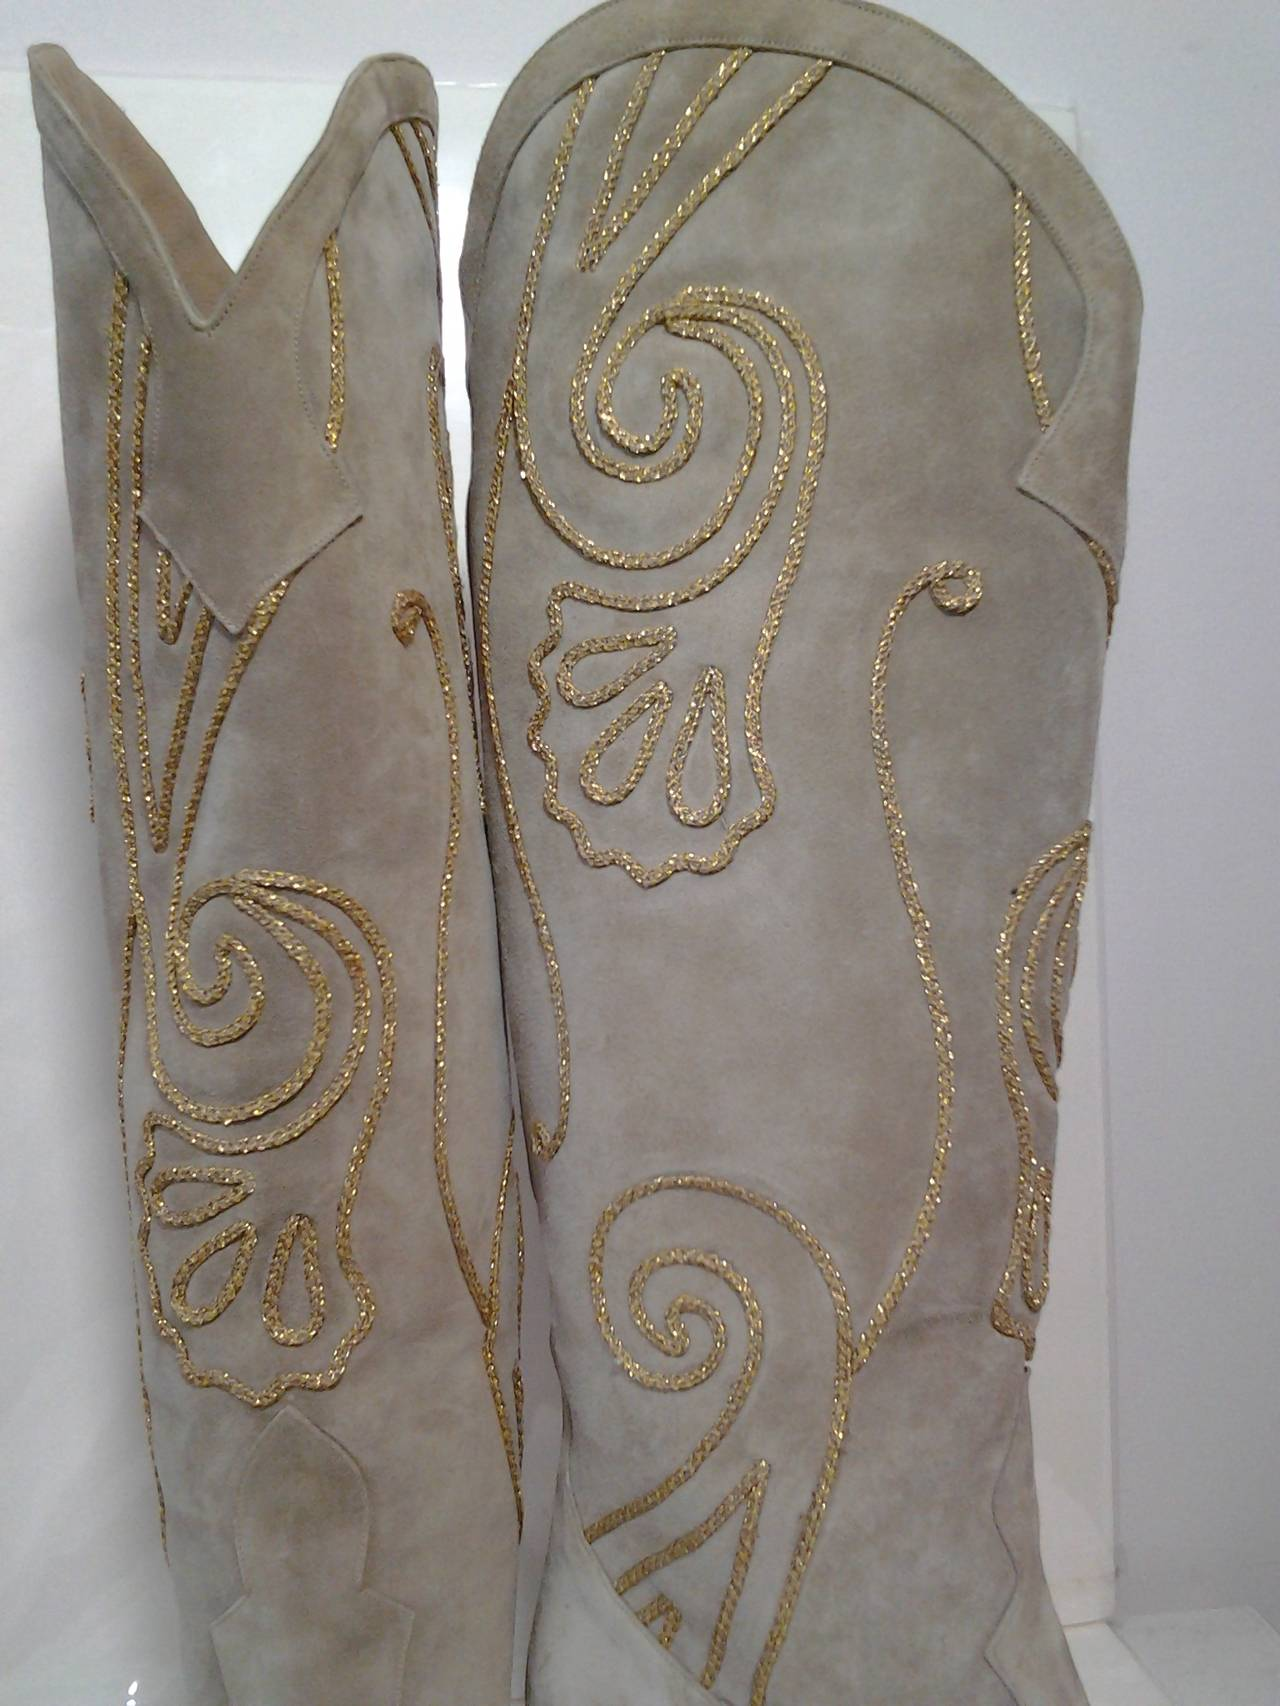 Gray 1980s Andrea Pfister Taupe Suede Western Boots w/ Gold Soutache Braid For Sale